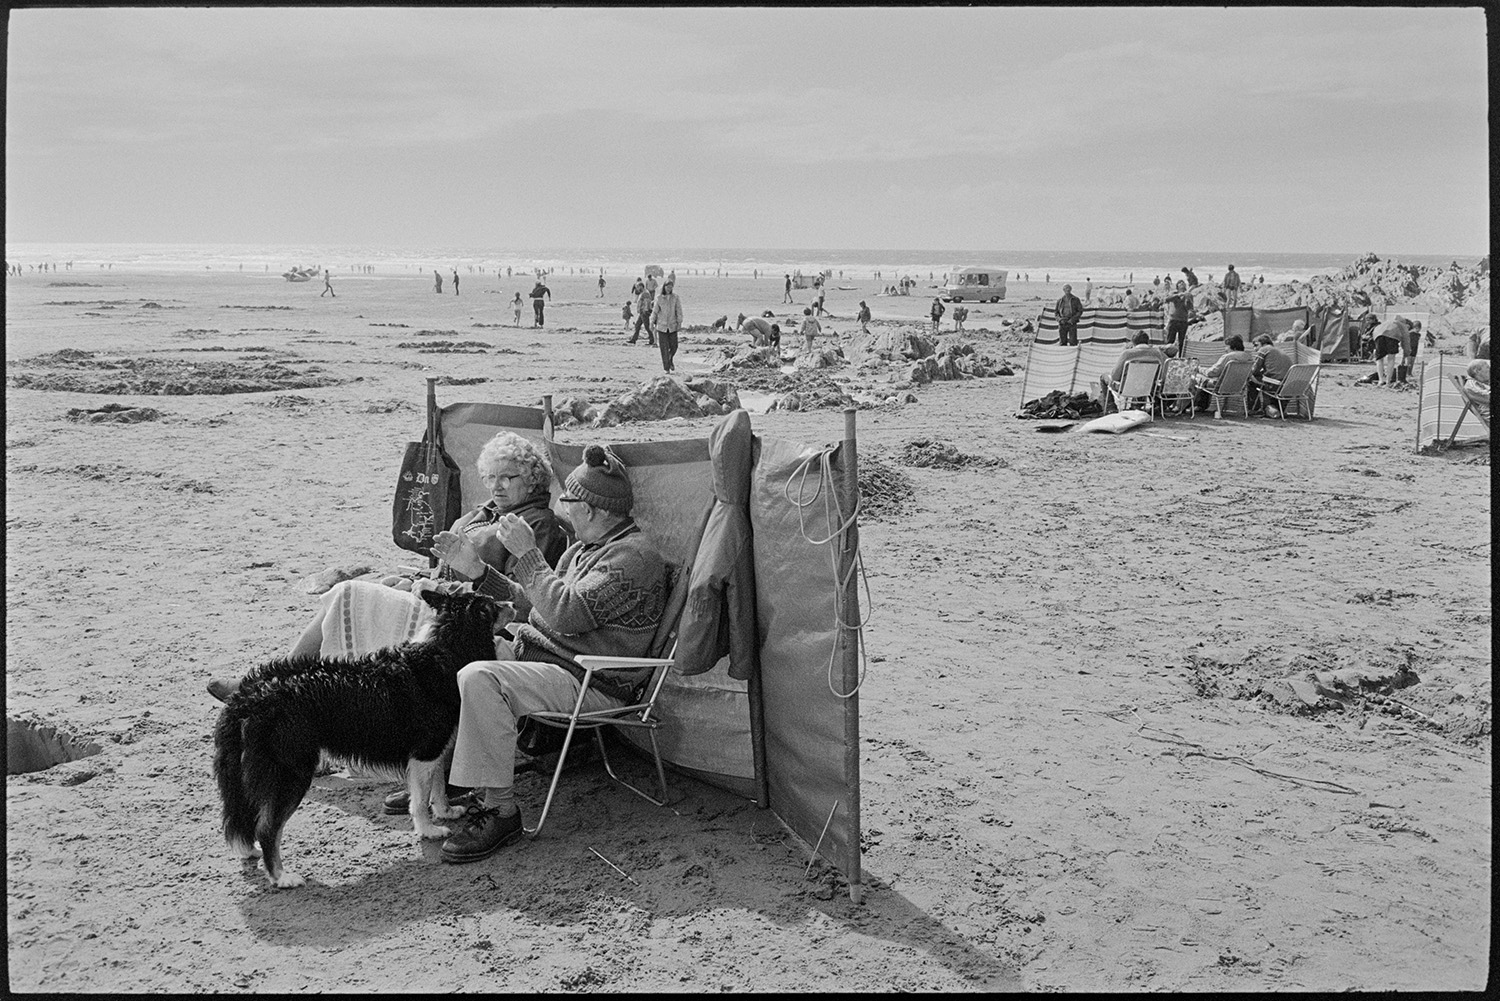 Beach scenes, people sitting behind windbreaks.<br /> [A couple sitting behind a windbreak with their dog on Woolacombe beach. The man is wearing a woolly hat. Other holidaymakers, an ice cream van and the sea are visible in the background.]